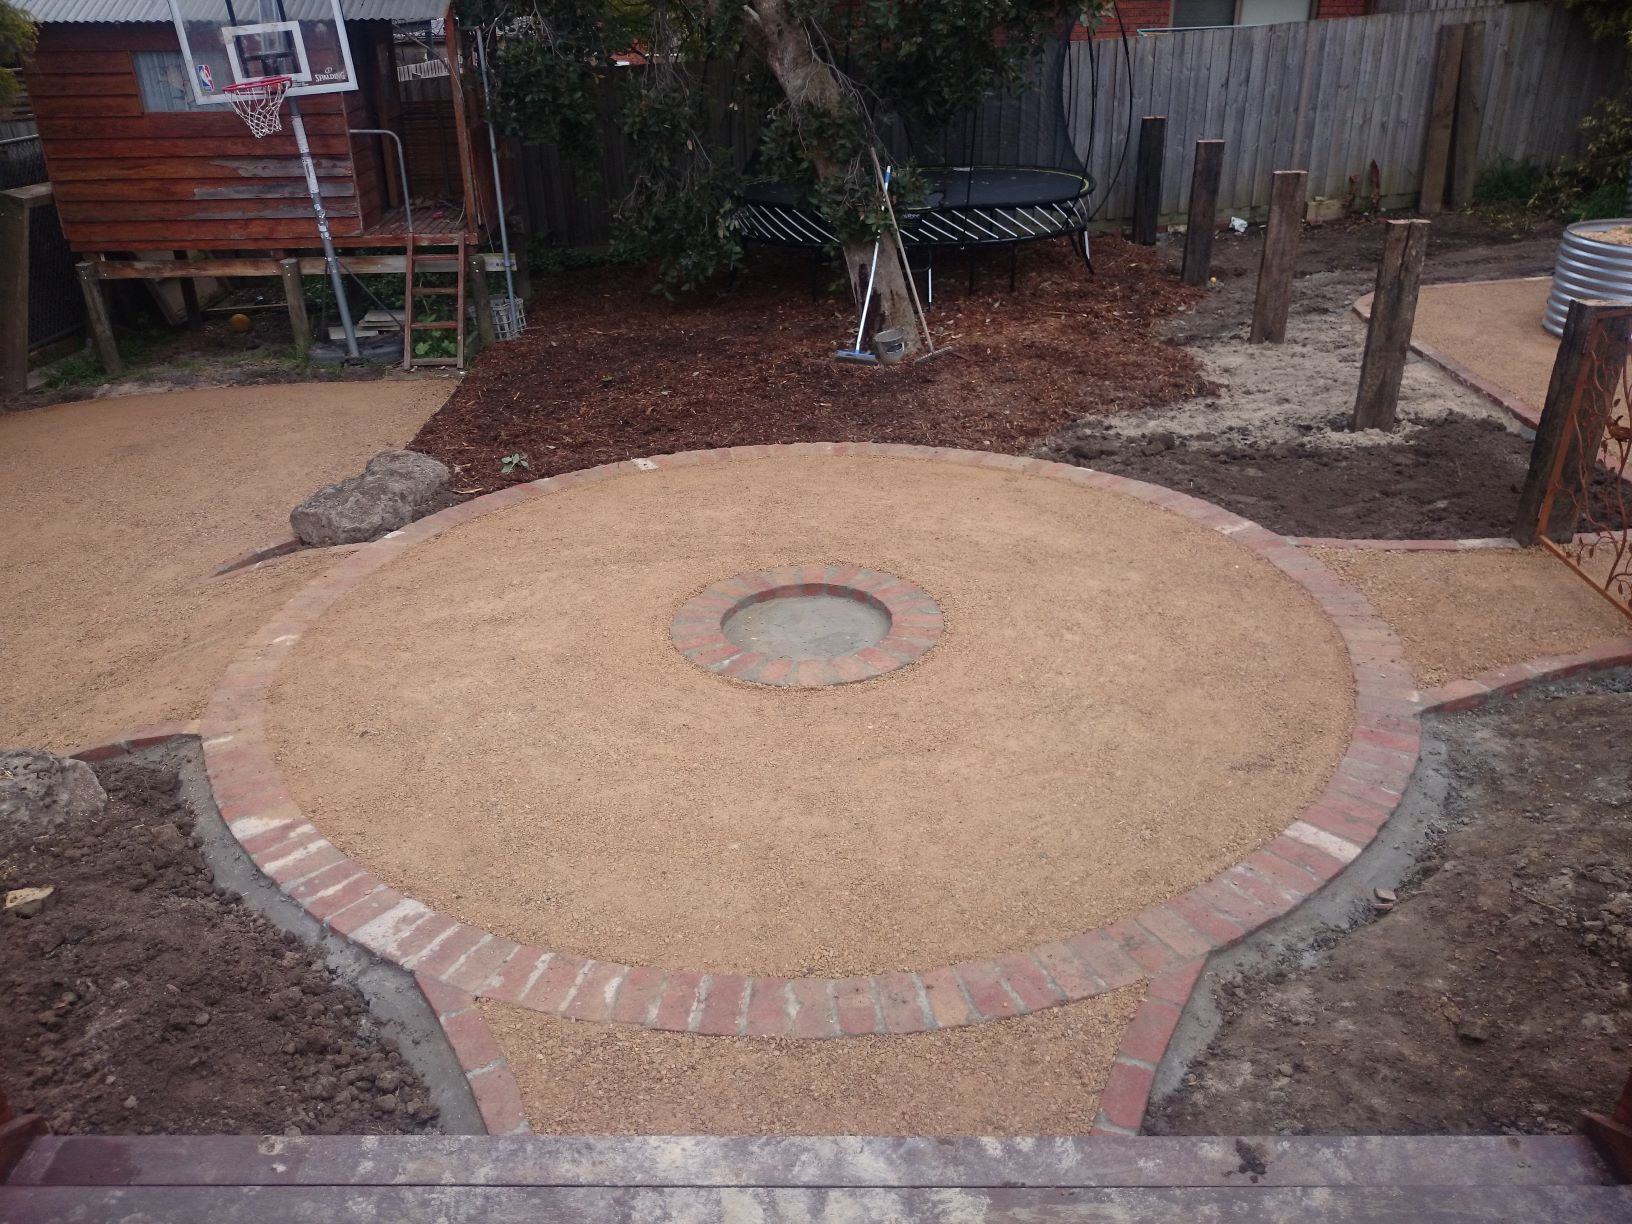 Country / Rustic style garden, Garden designed for kids, garden for chooks, veggie garden, Compacted Crushed sandstone, Corrigated Iron veggie beds, Up right railway sleepers, second hand red bricks, overwrought gate, Trampoline,